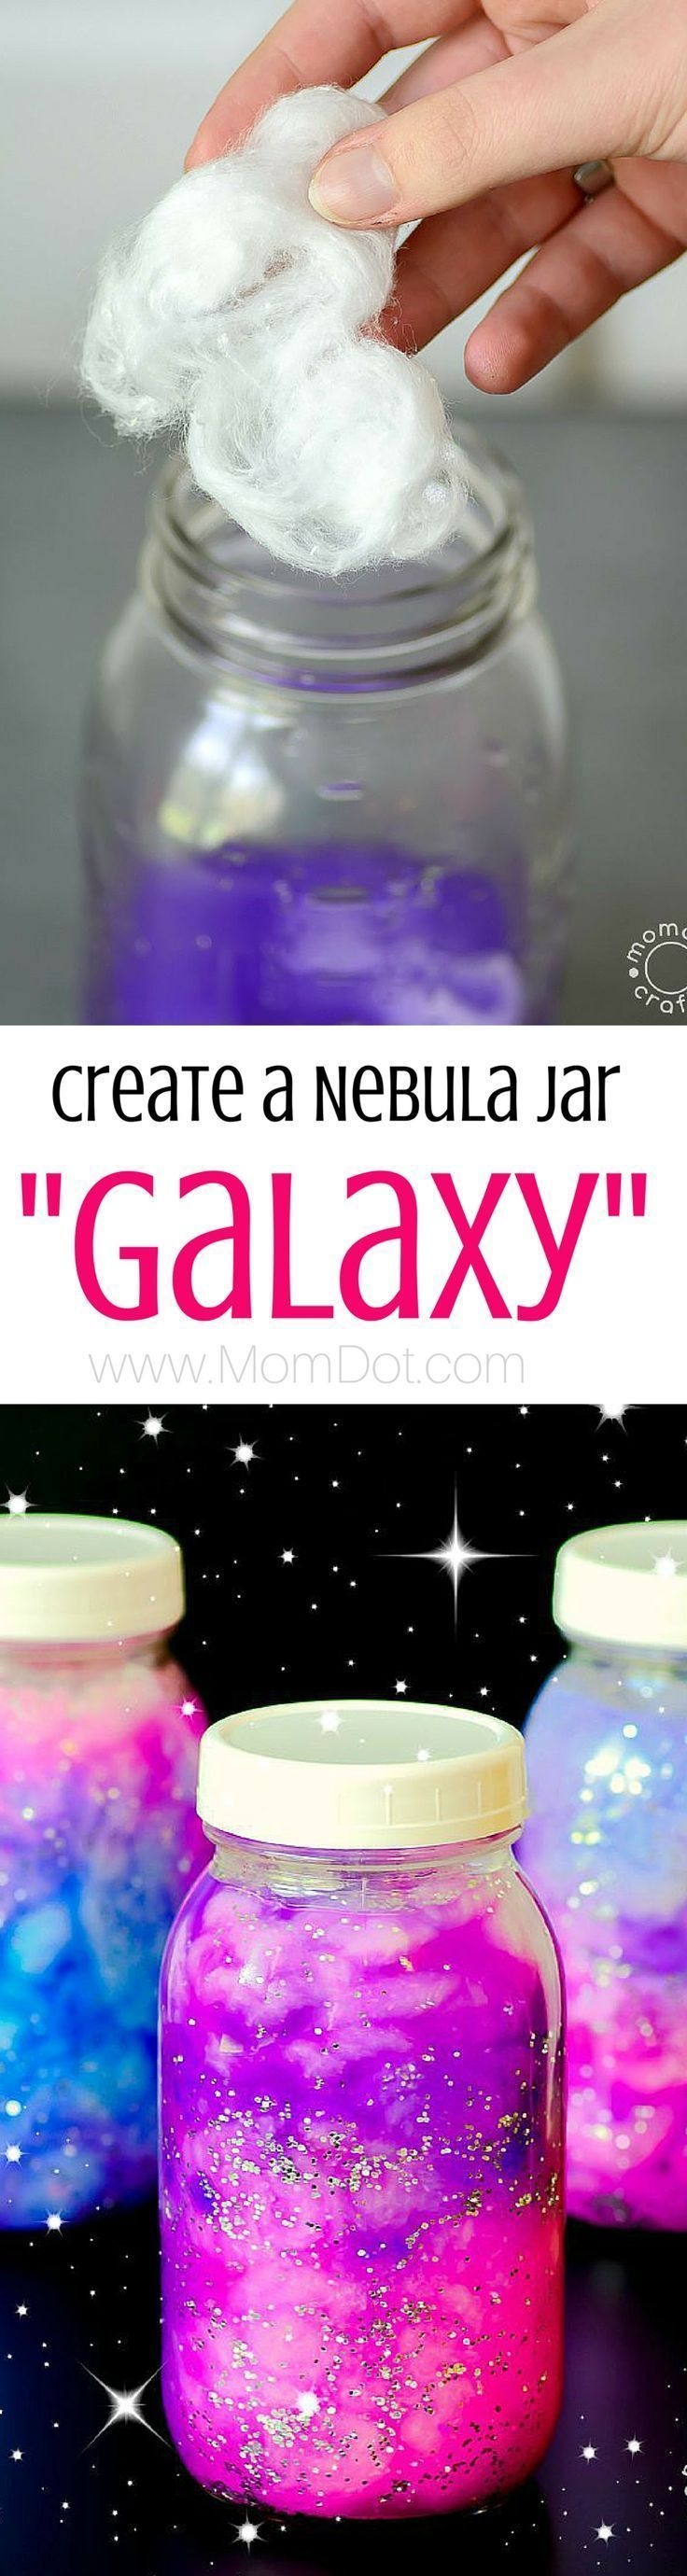 How to make a nebula jar, sometimes called a Galaxy Jar. Fun and simple tutorial to make this DIY that's great for calming kids!